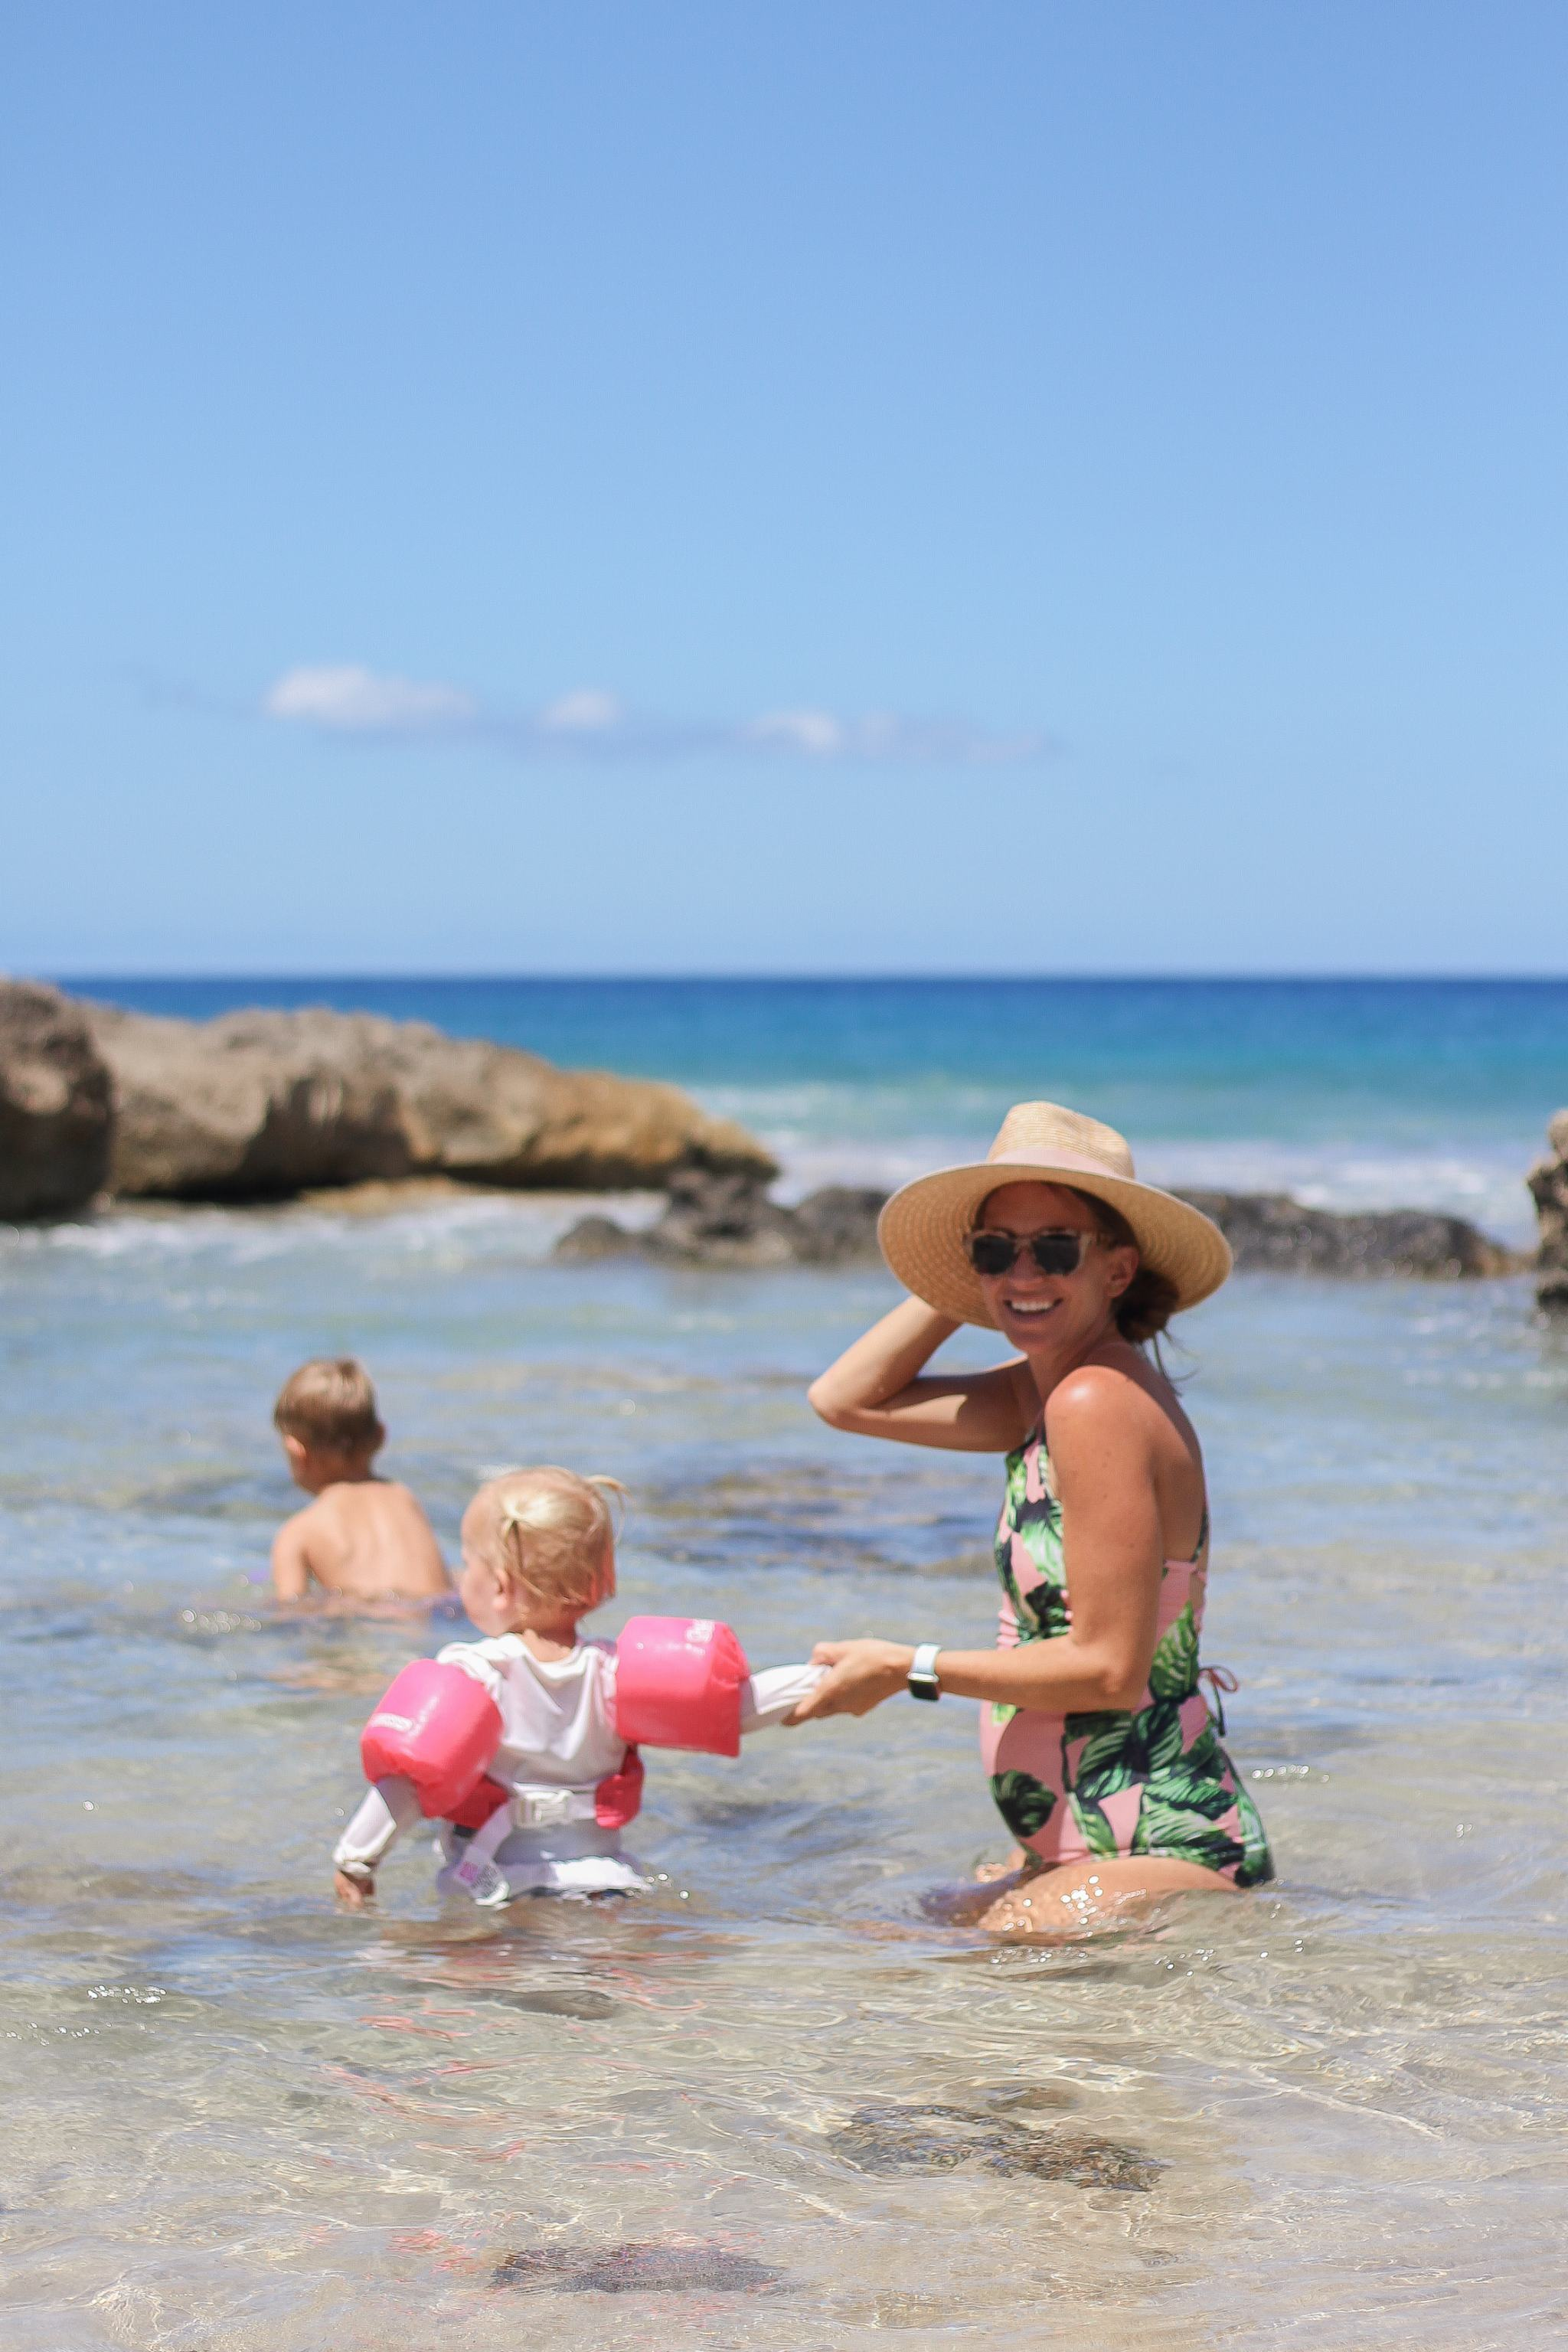 tips for the stay at home mom - how to stay sane as a stay at home mom - tips for the SAHM - toddler ideas - toddler life - mom life - toddler mom - makua beach - hawaii blogger - honolulu blogger - mom blogger